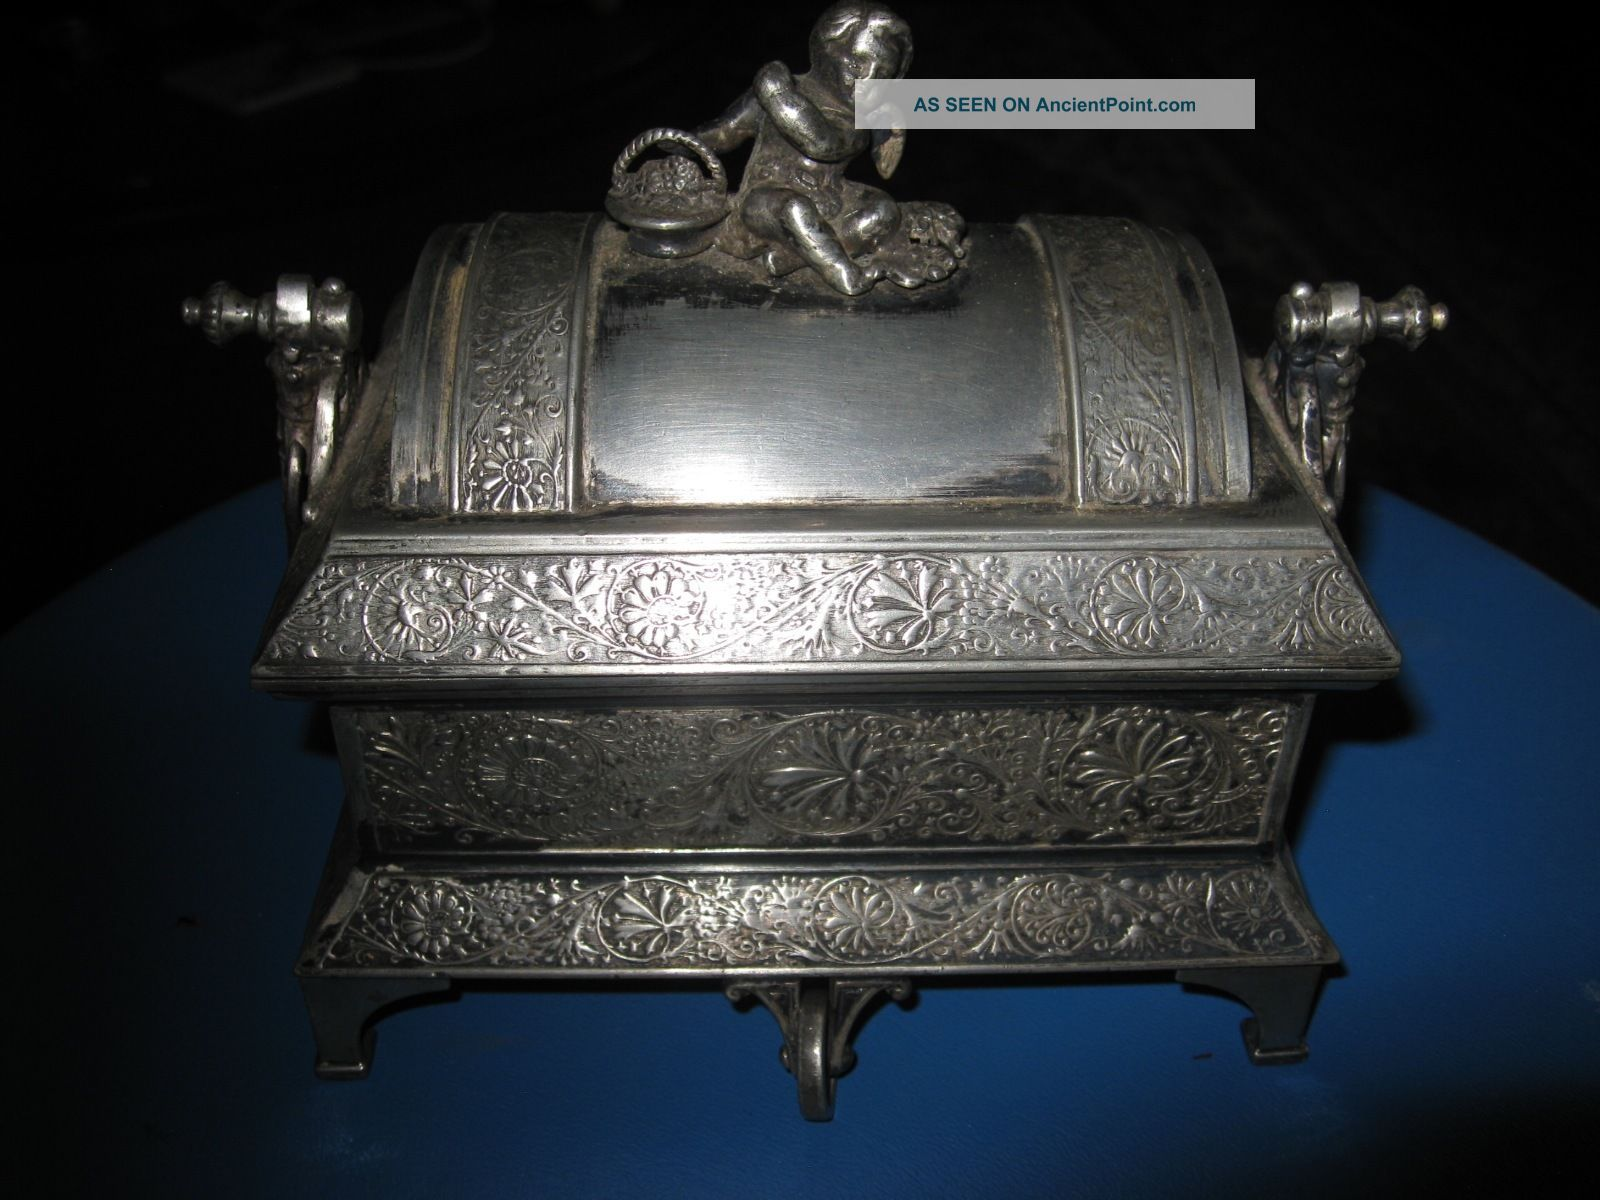 Antique Mermod Jaccard Co.  Quadruple Silver Plate Mechanical Jewelry Box 1884 Other Antique Silverplate photo